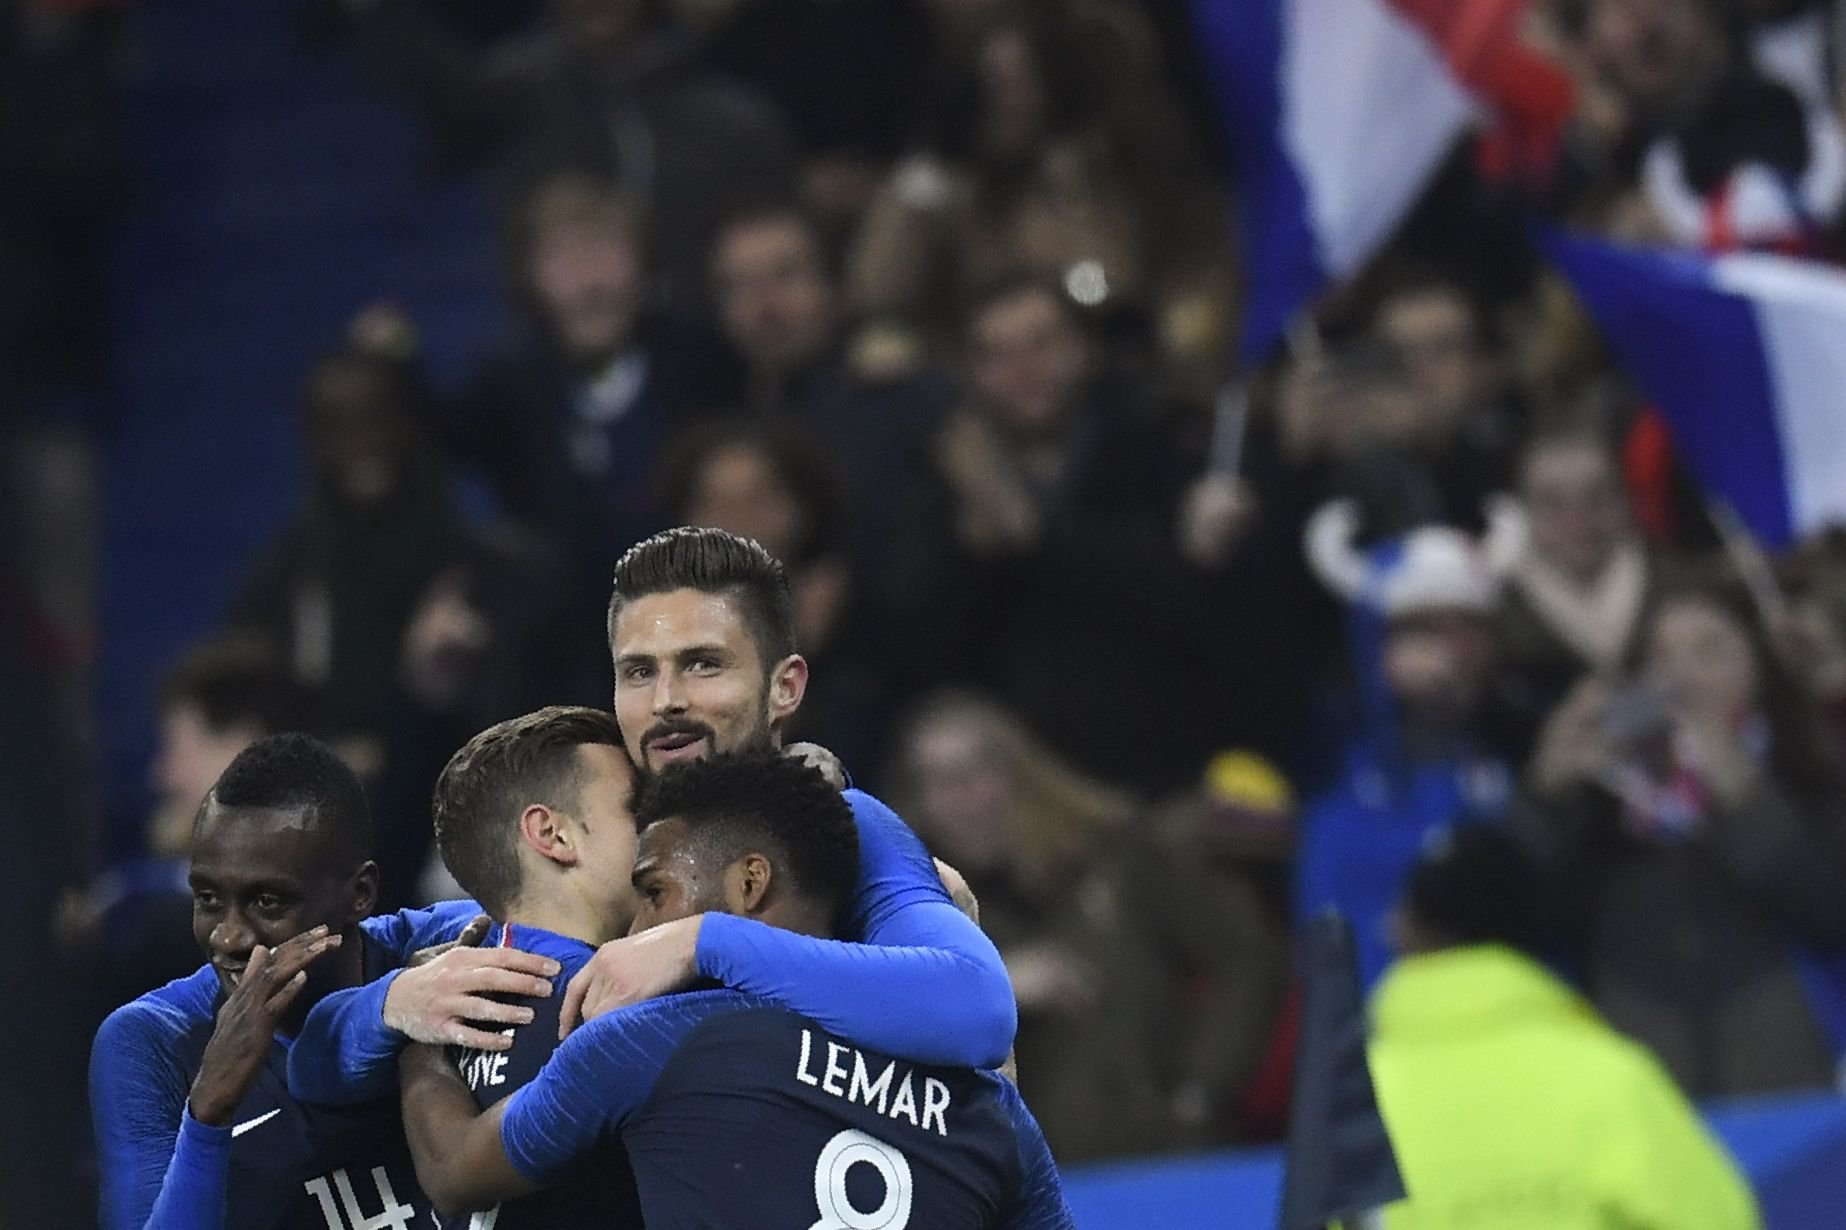 David Ospina error gifts Oliver Giroud a goal for France